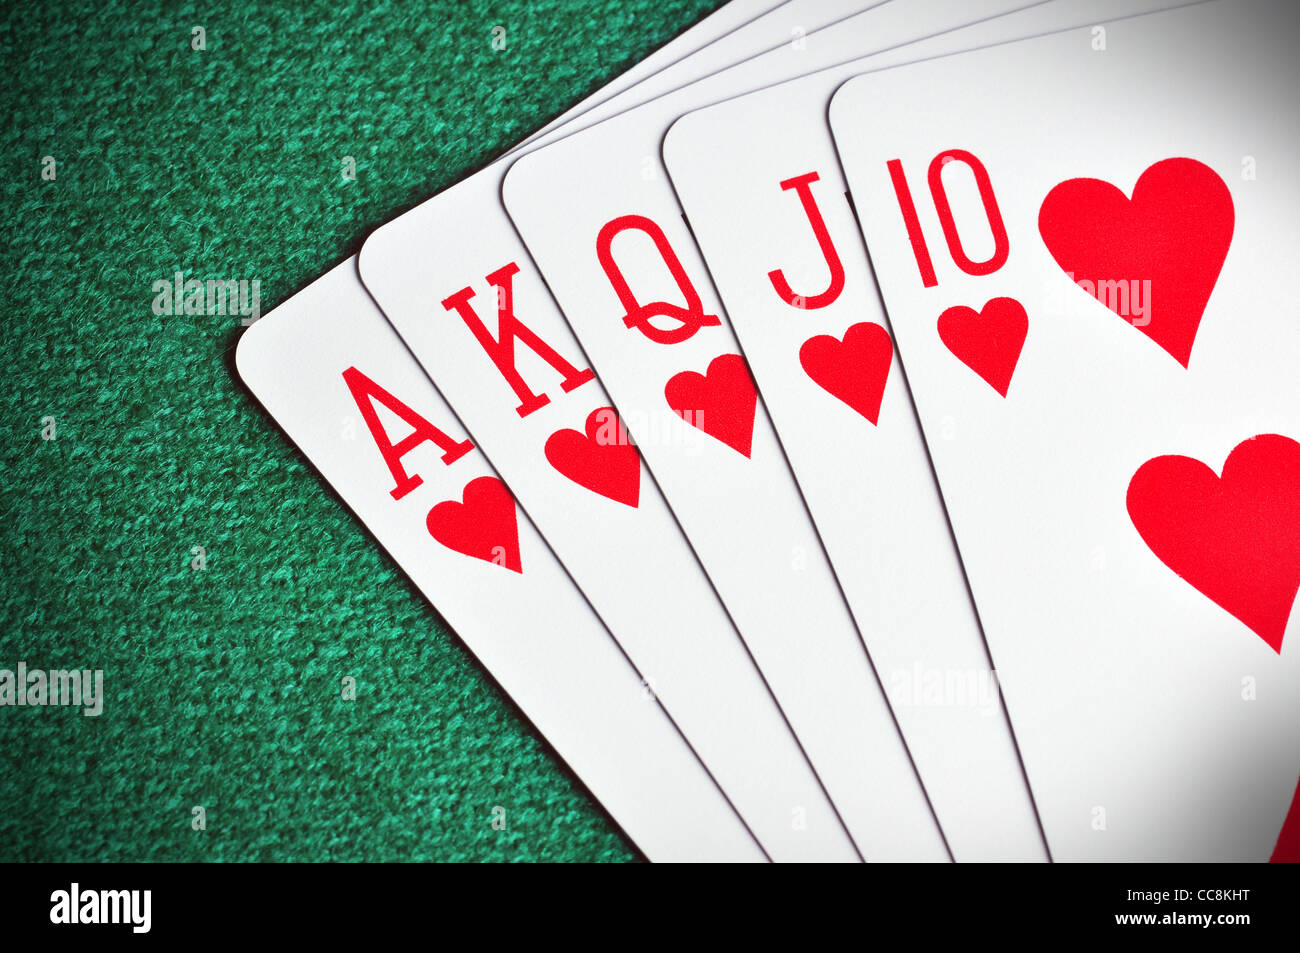 Royal Flush poker card sequence on a green table - Stock Image